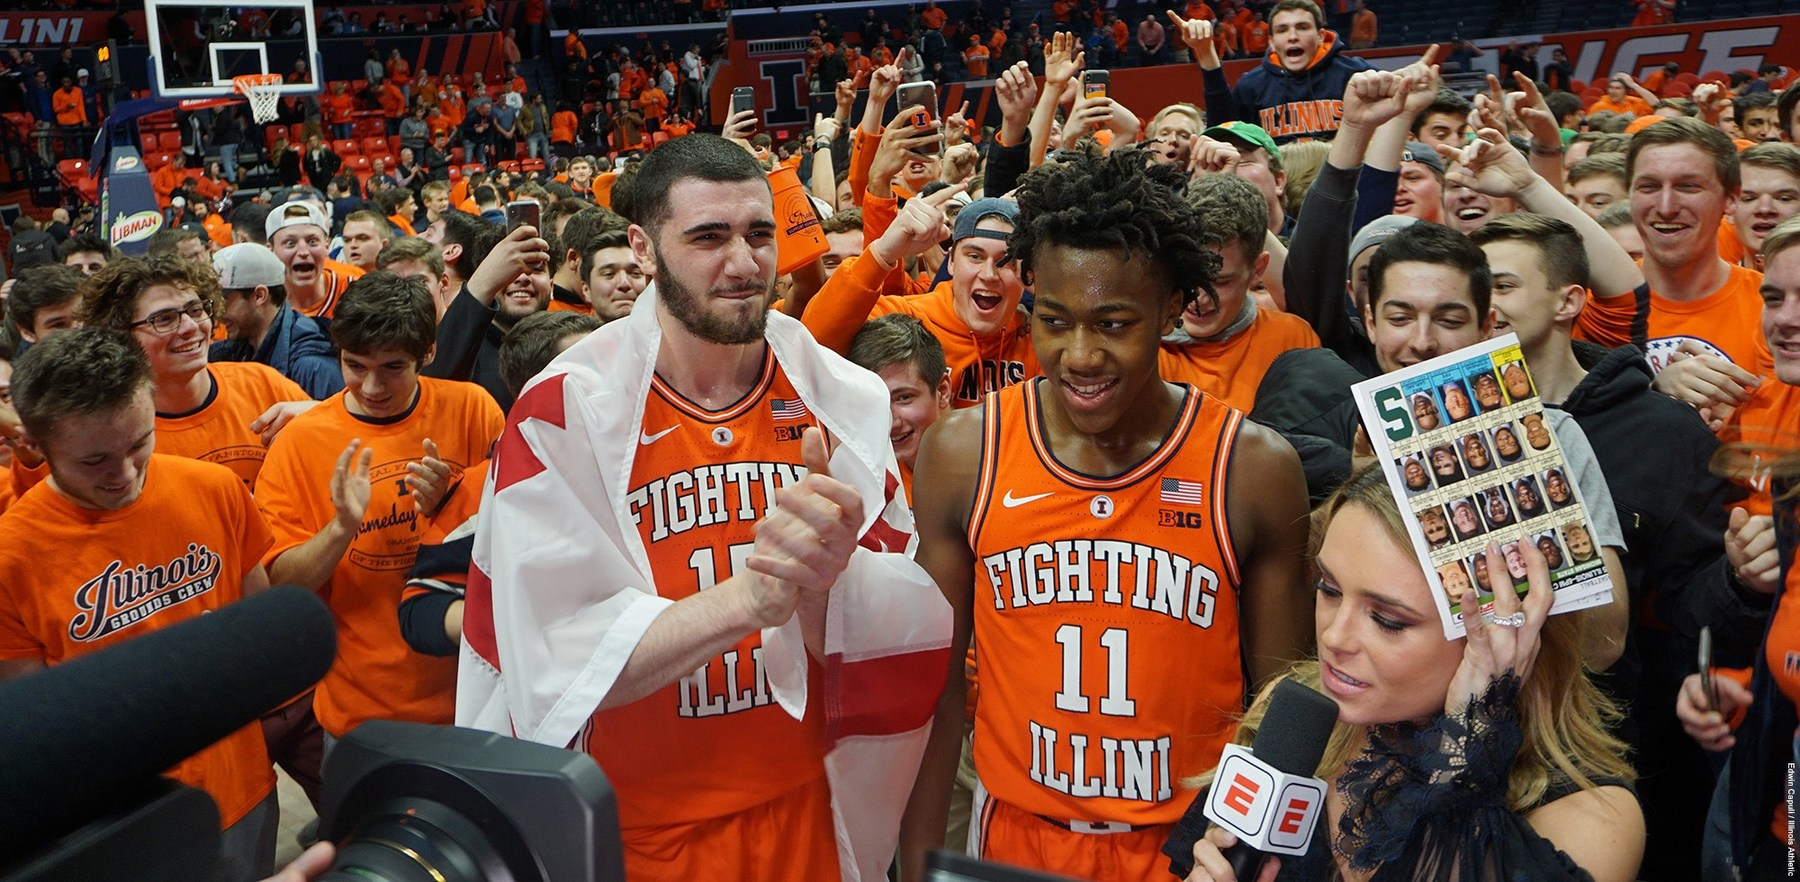 Giorgi Bezhanishvili and Ayo Dosunmu surrounded by fans after a recent victory